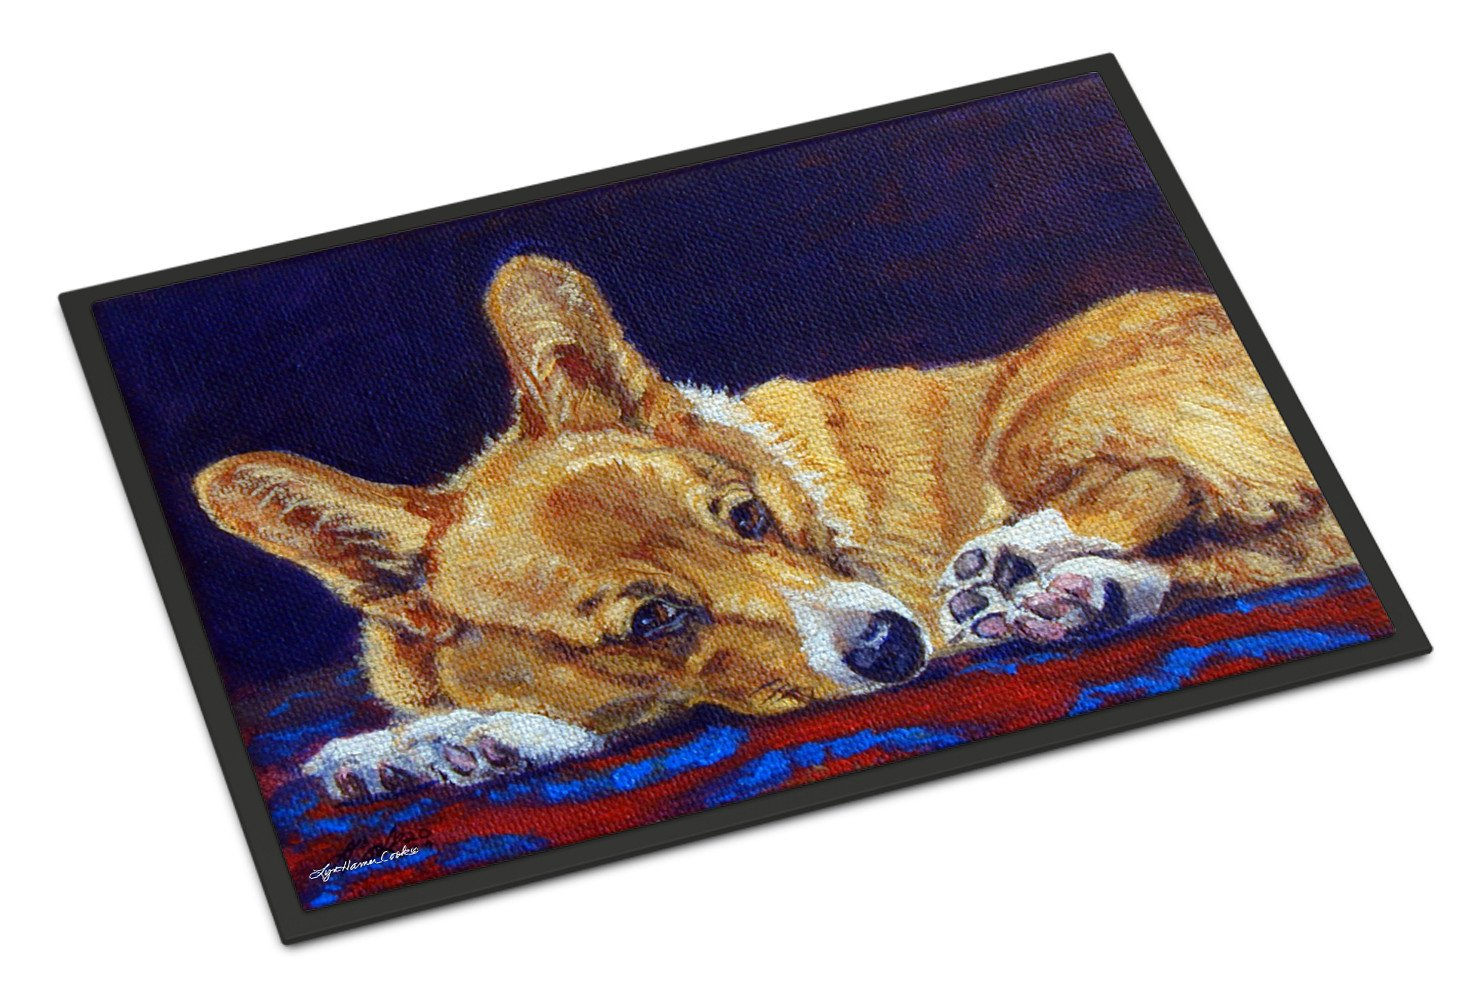 Corgi Blue Lonesome Indoor or Outdoor Mat 18x27 7320MAT - the-store.com